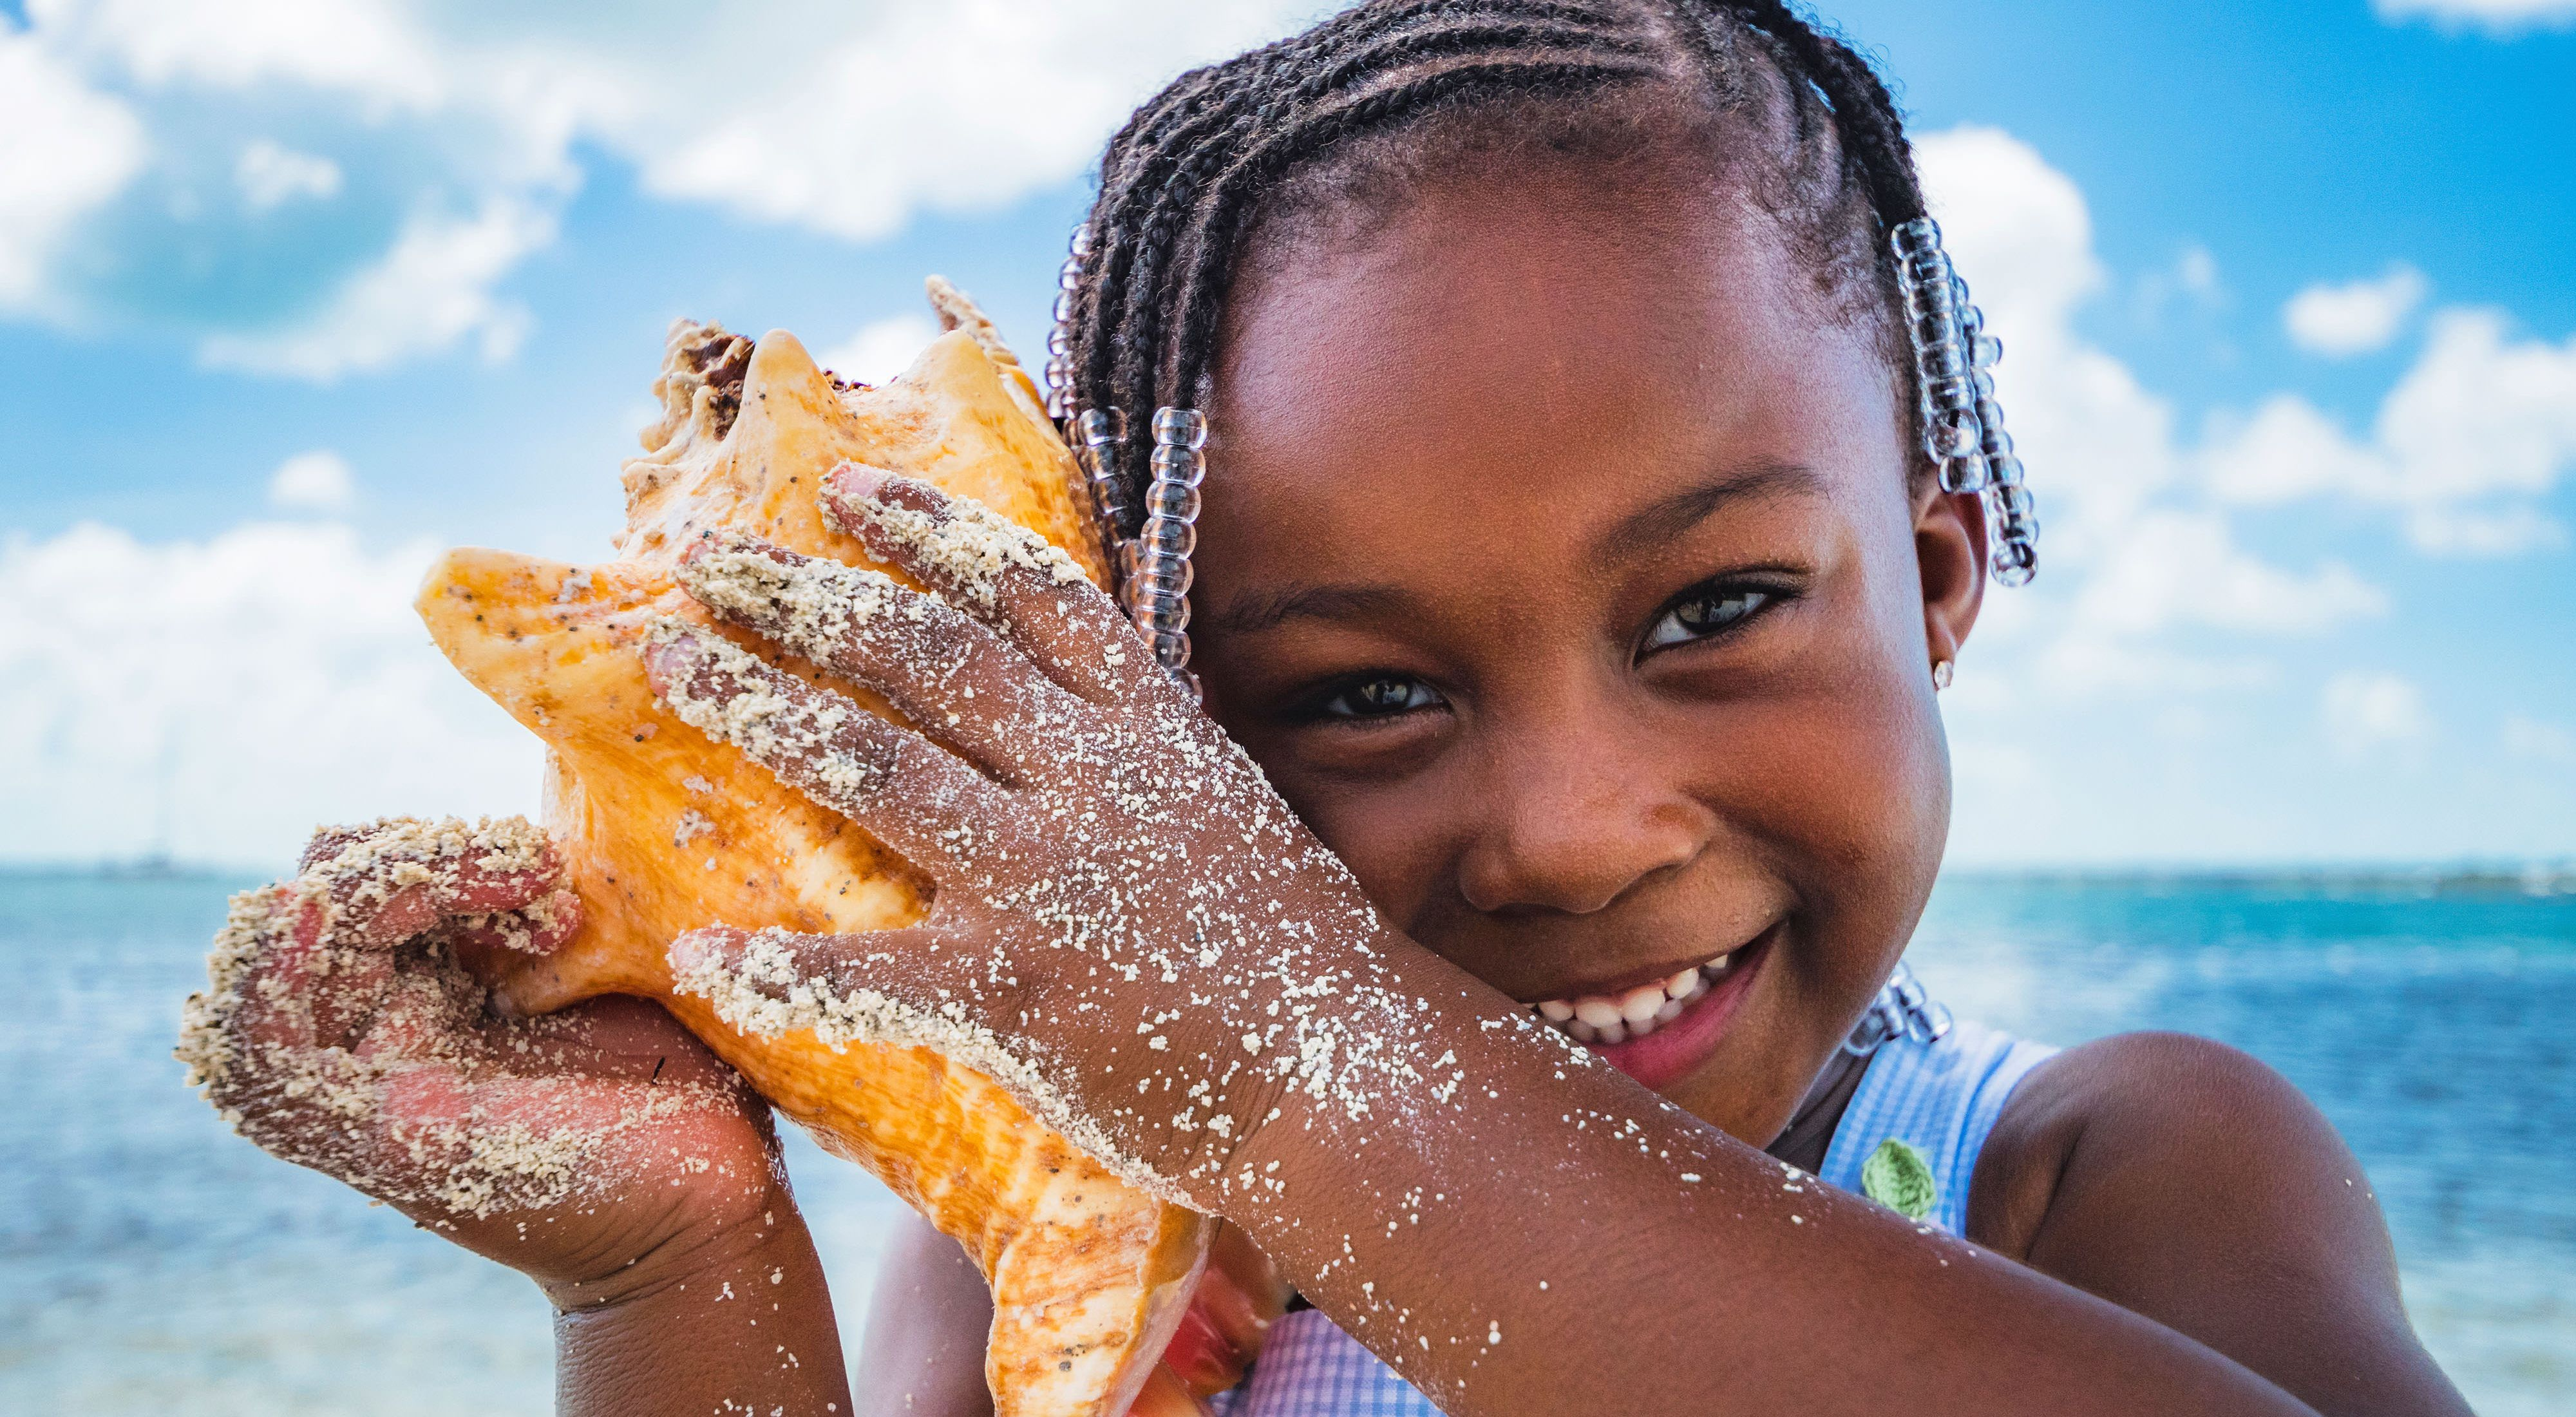 Girl smiles at camera holding a conch shell with hands covered in sand and blue ocean in background.